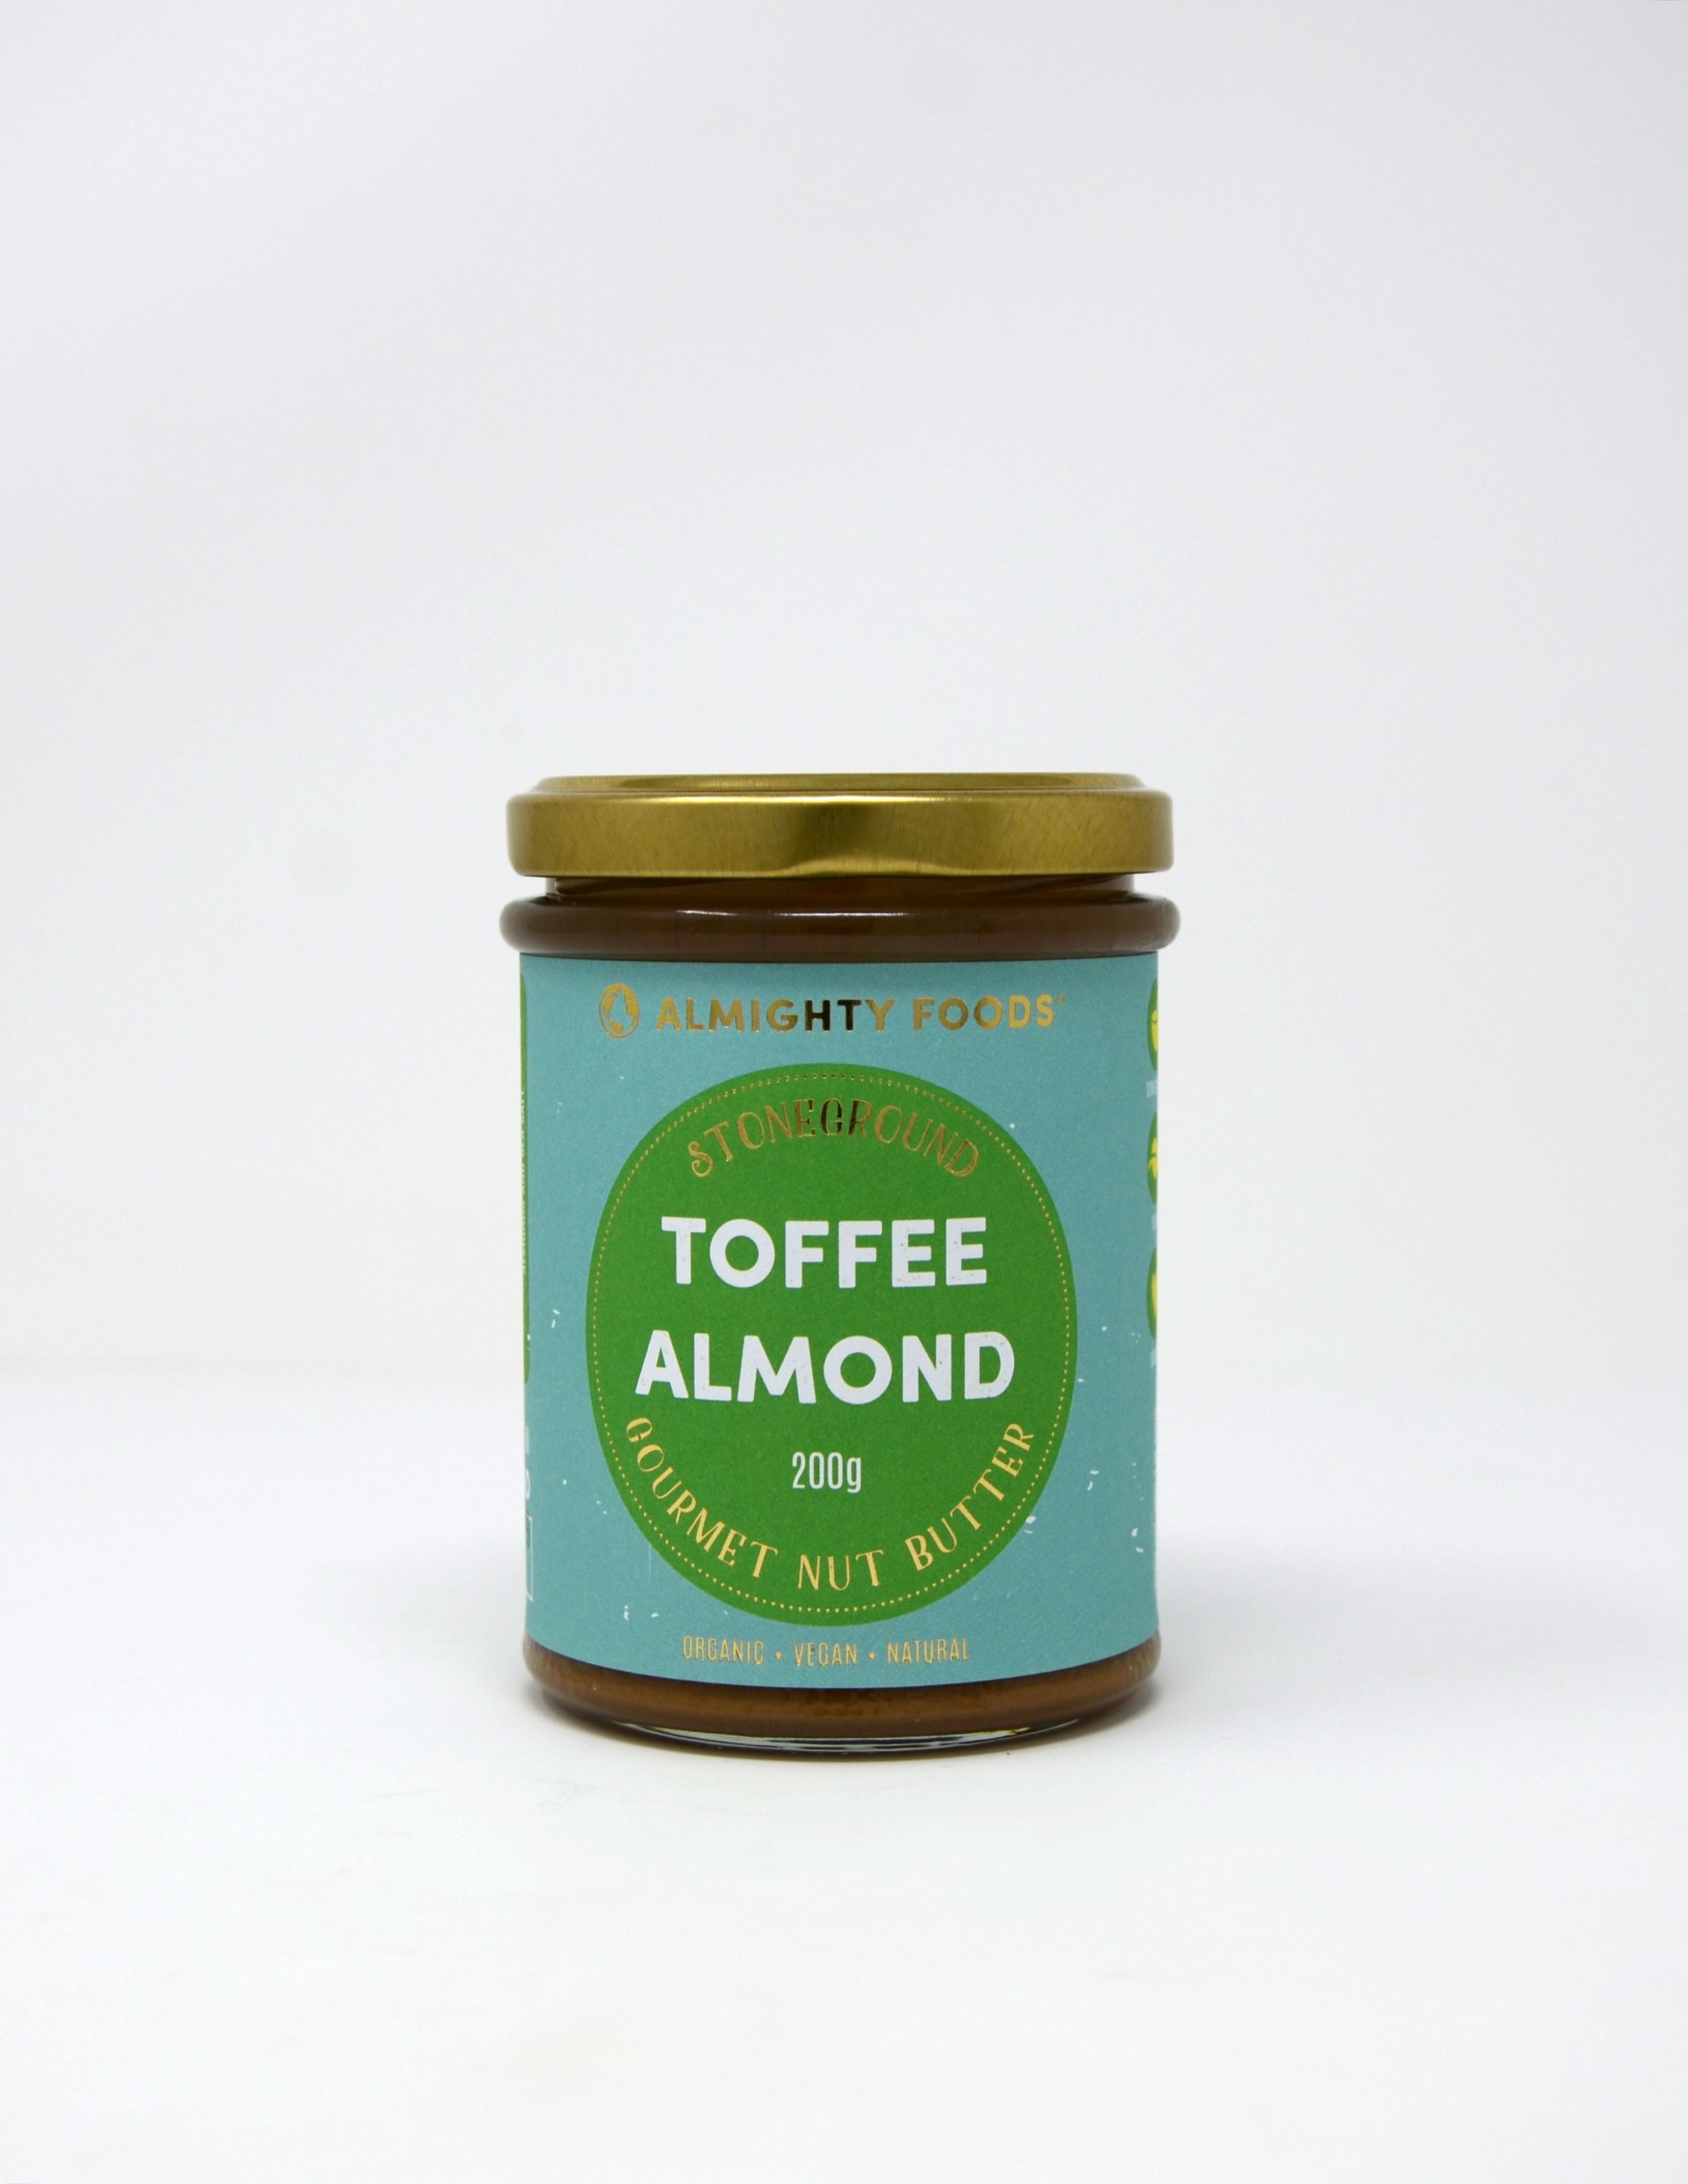 Toffee Almond.jpg